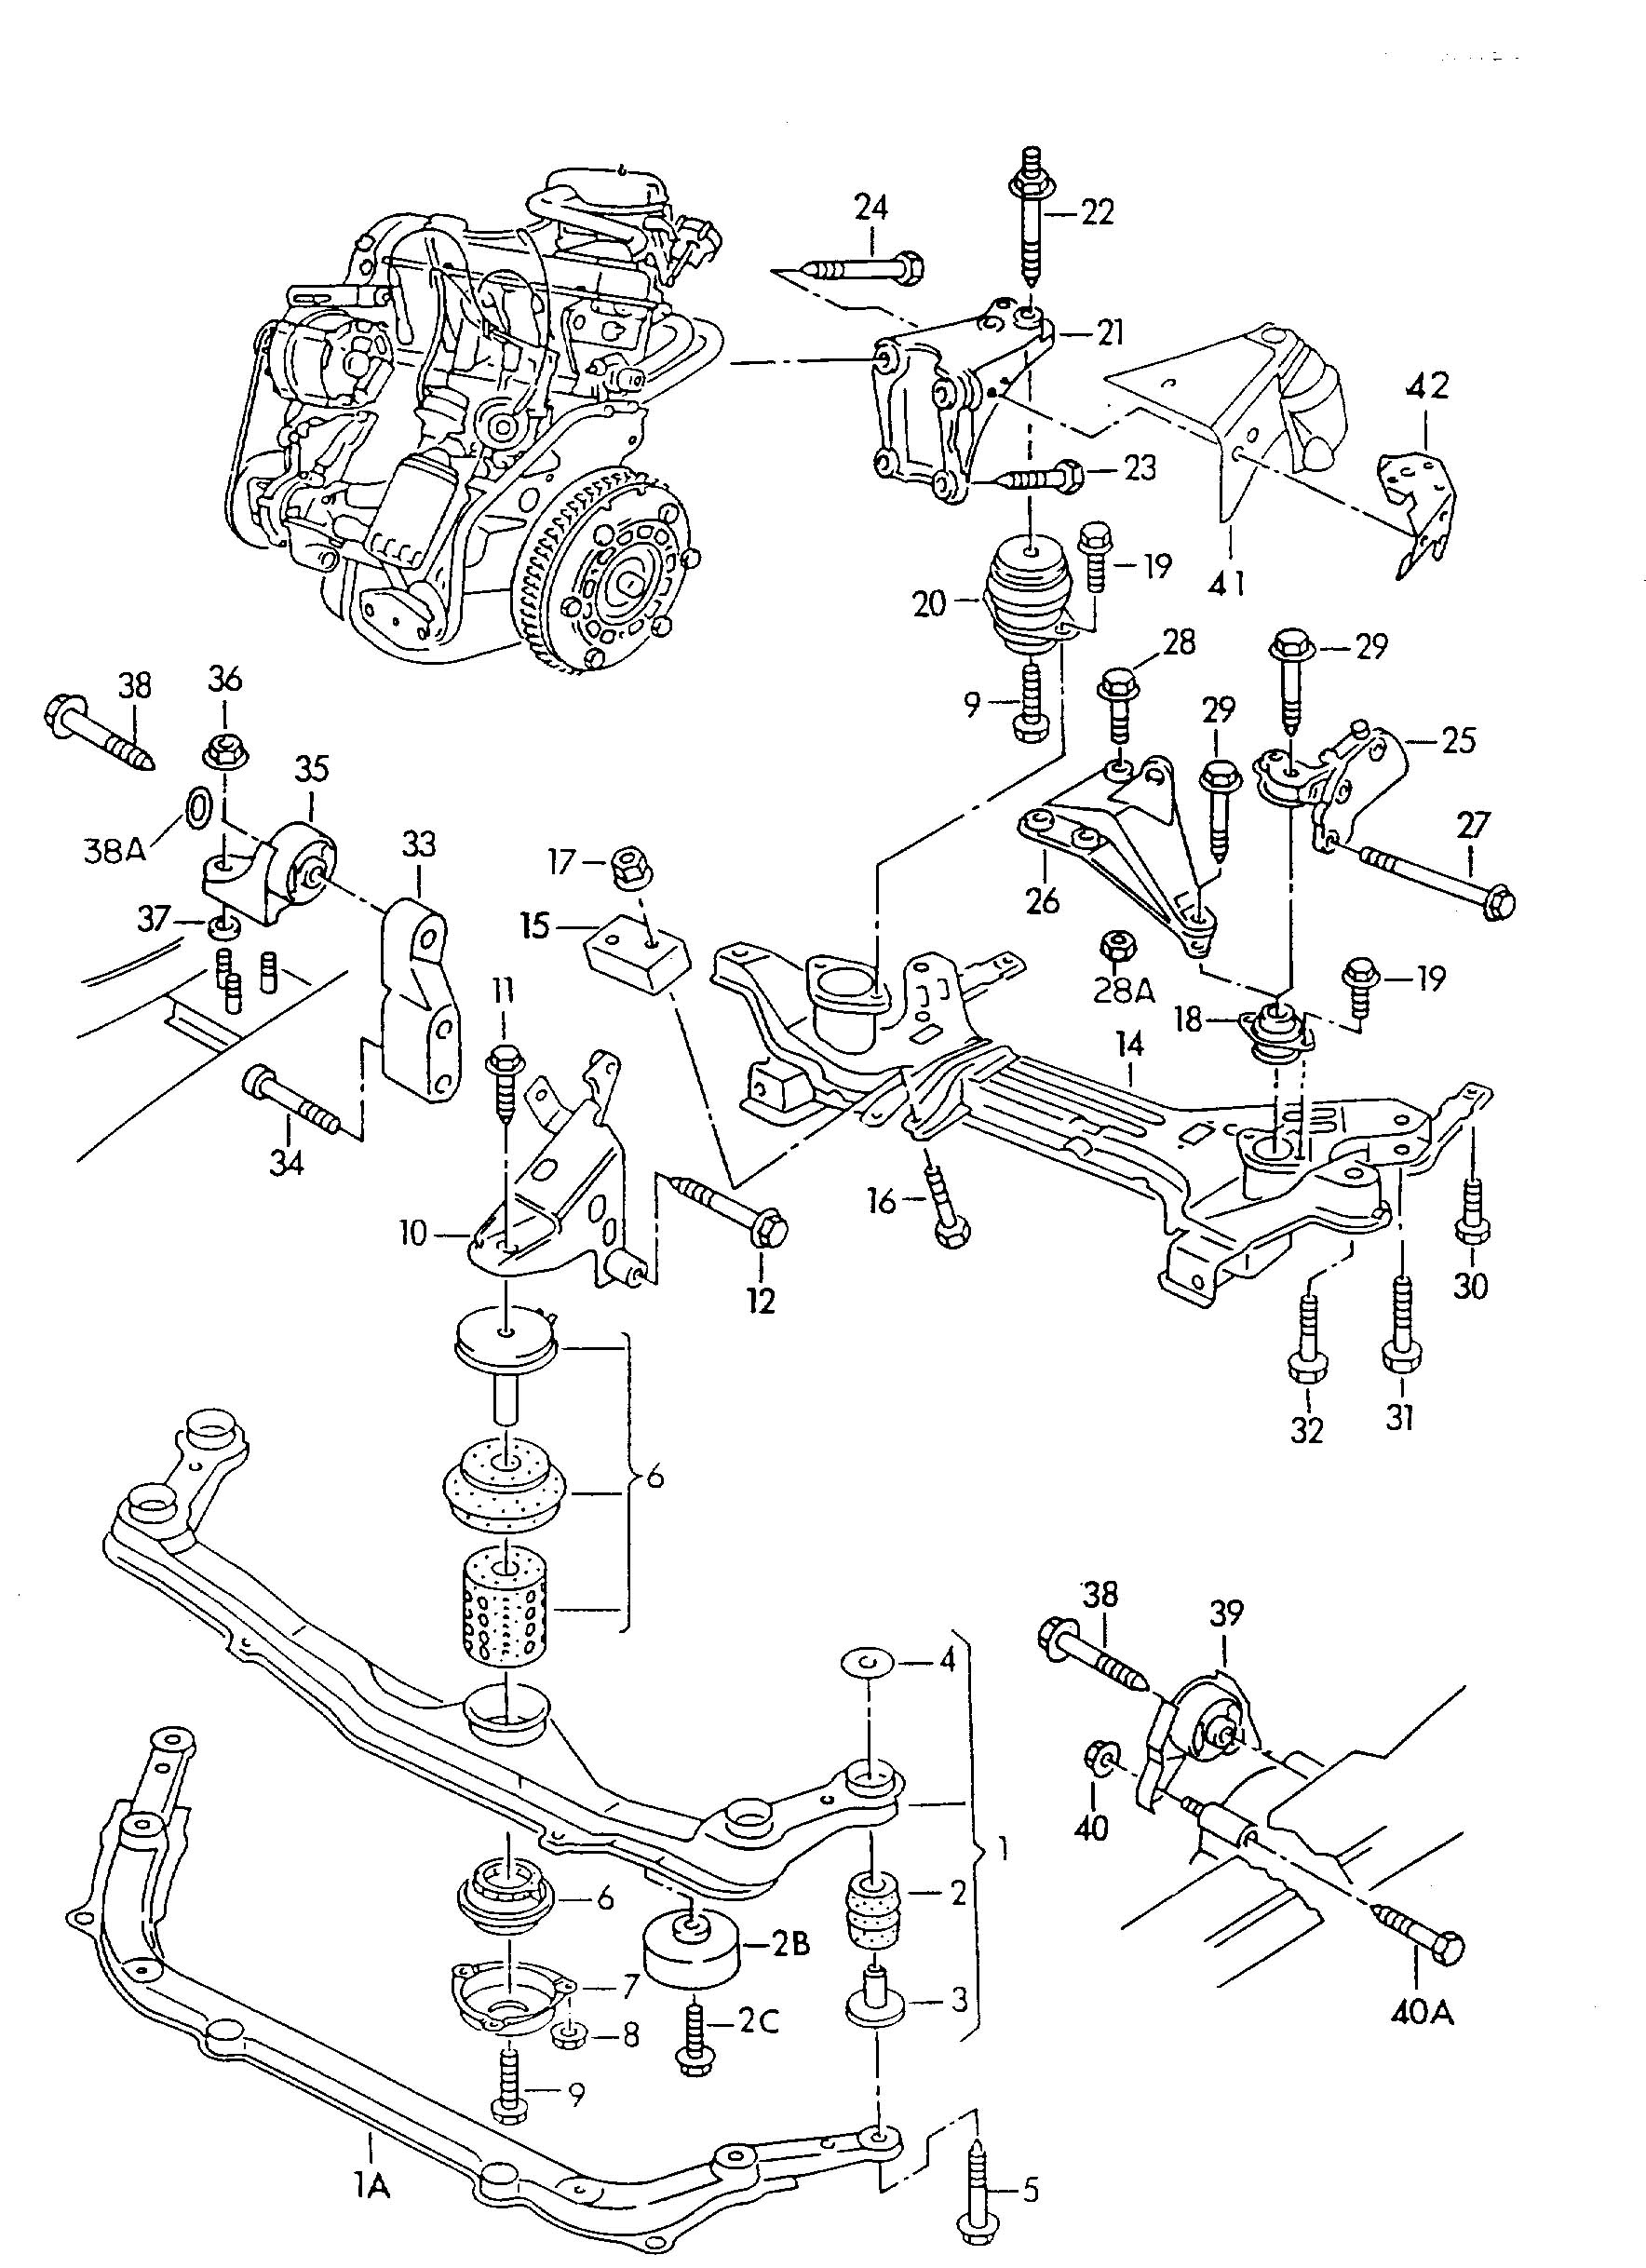 Volkswagen Jetta Coolant System Diagram Within Volkswagen Wiring And Engine